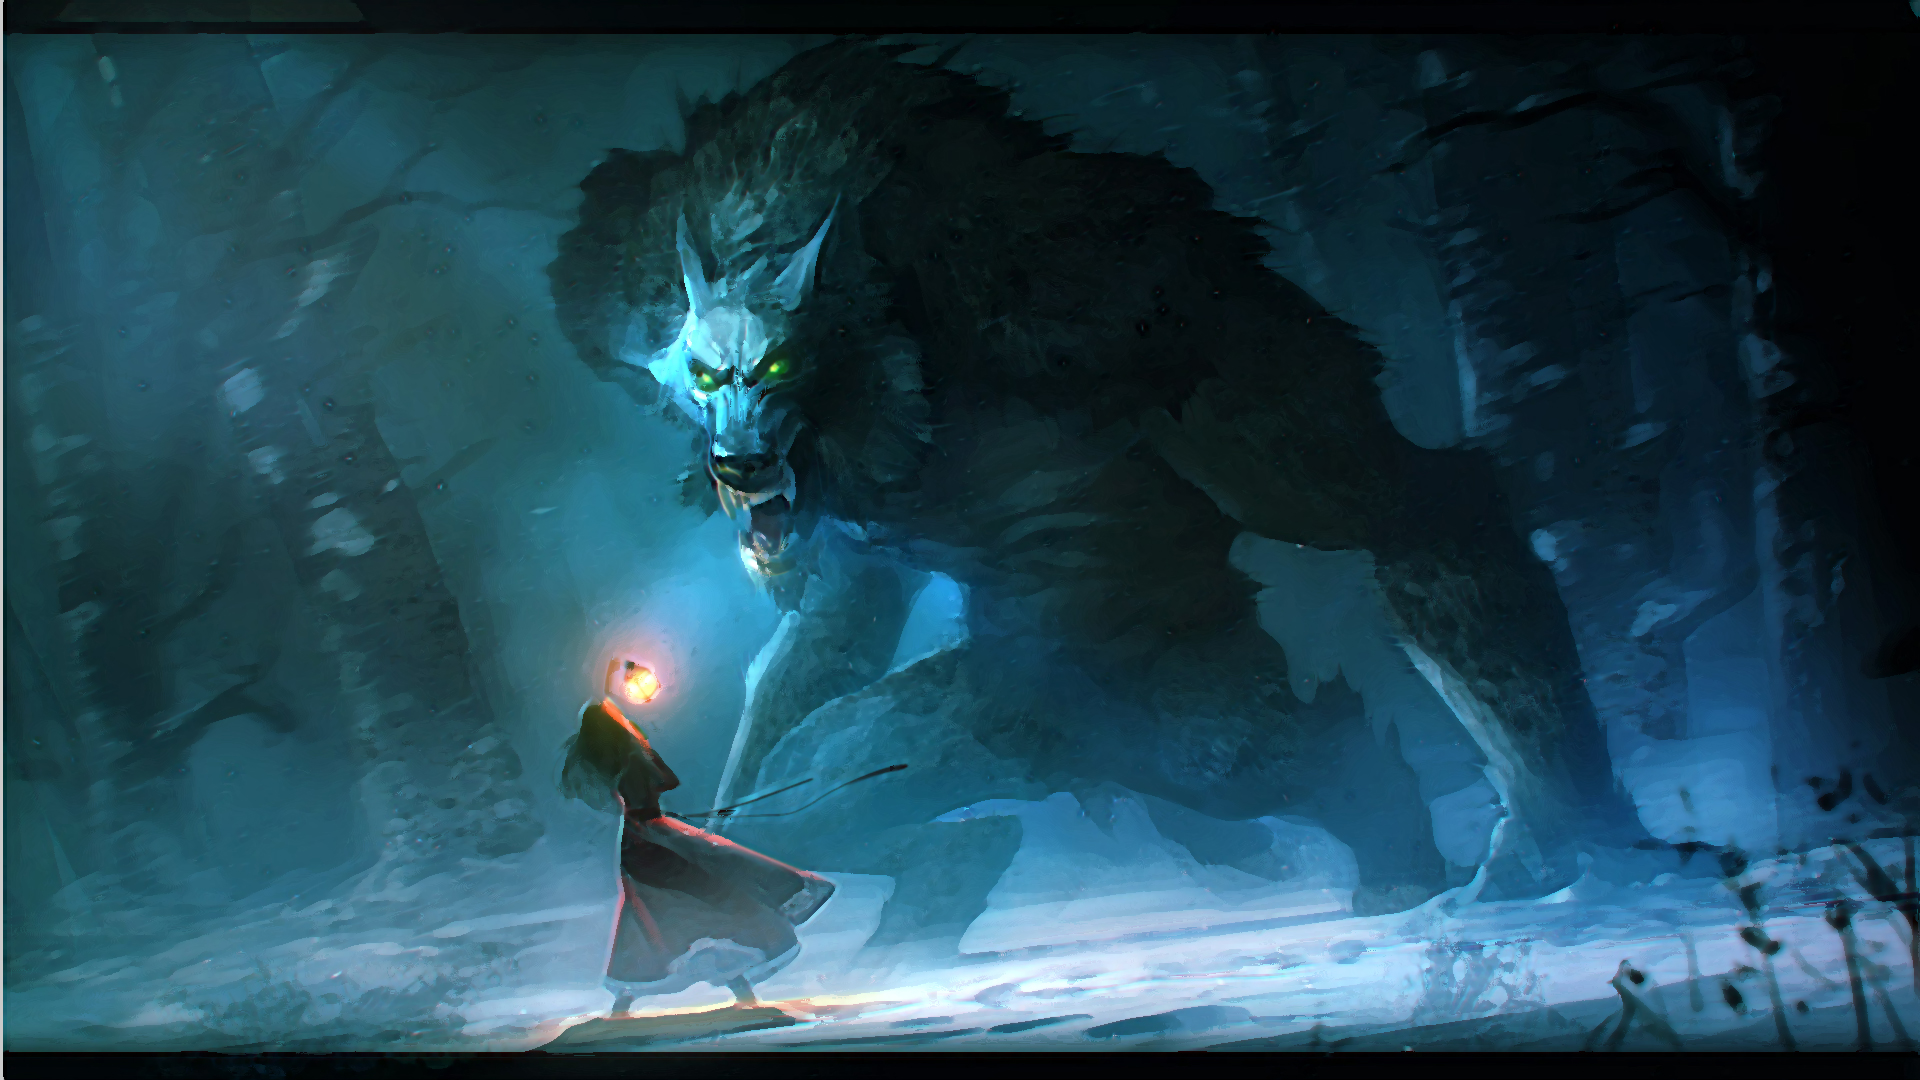 Werewolf Full HD wallpaper by Niconoff deviantart Full HD Wallpapers 1920x1080